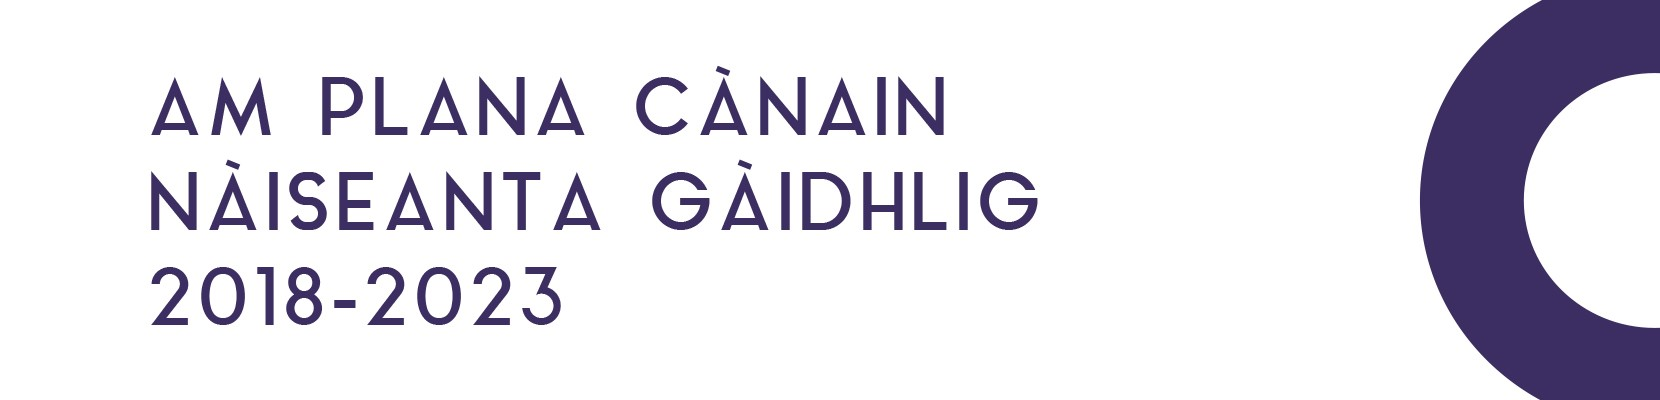 National Gaidhlig Language Plan